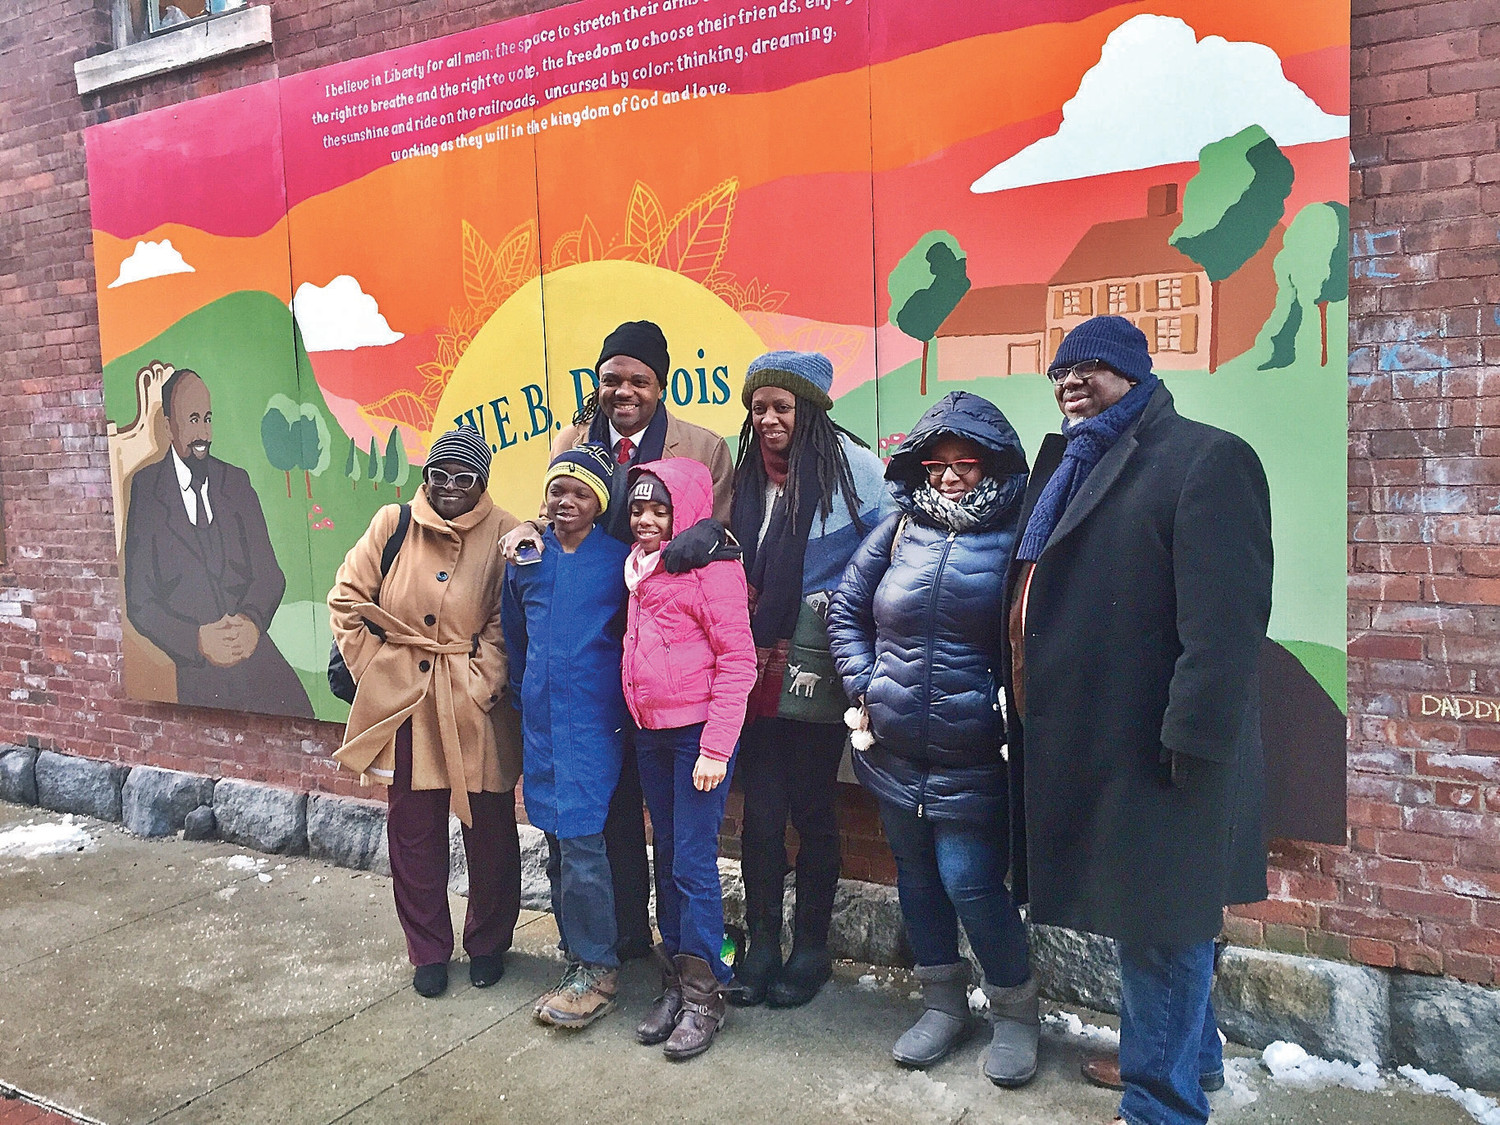 """Elizabeth Blackshine, co-founder of Harmony Homestead & Wholeness came from Albany, N.Y. with family and friends for this """"historic event."""""""